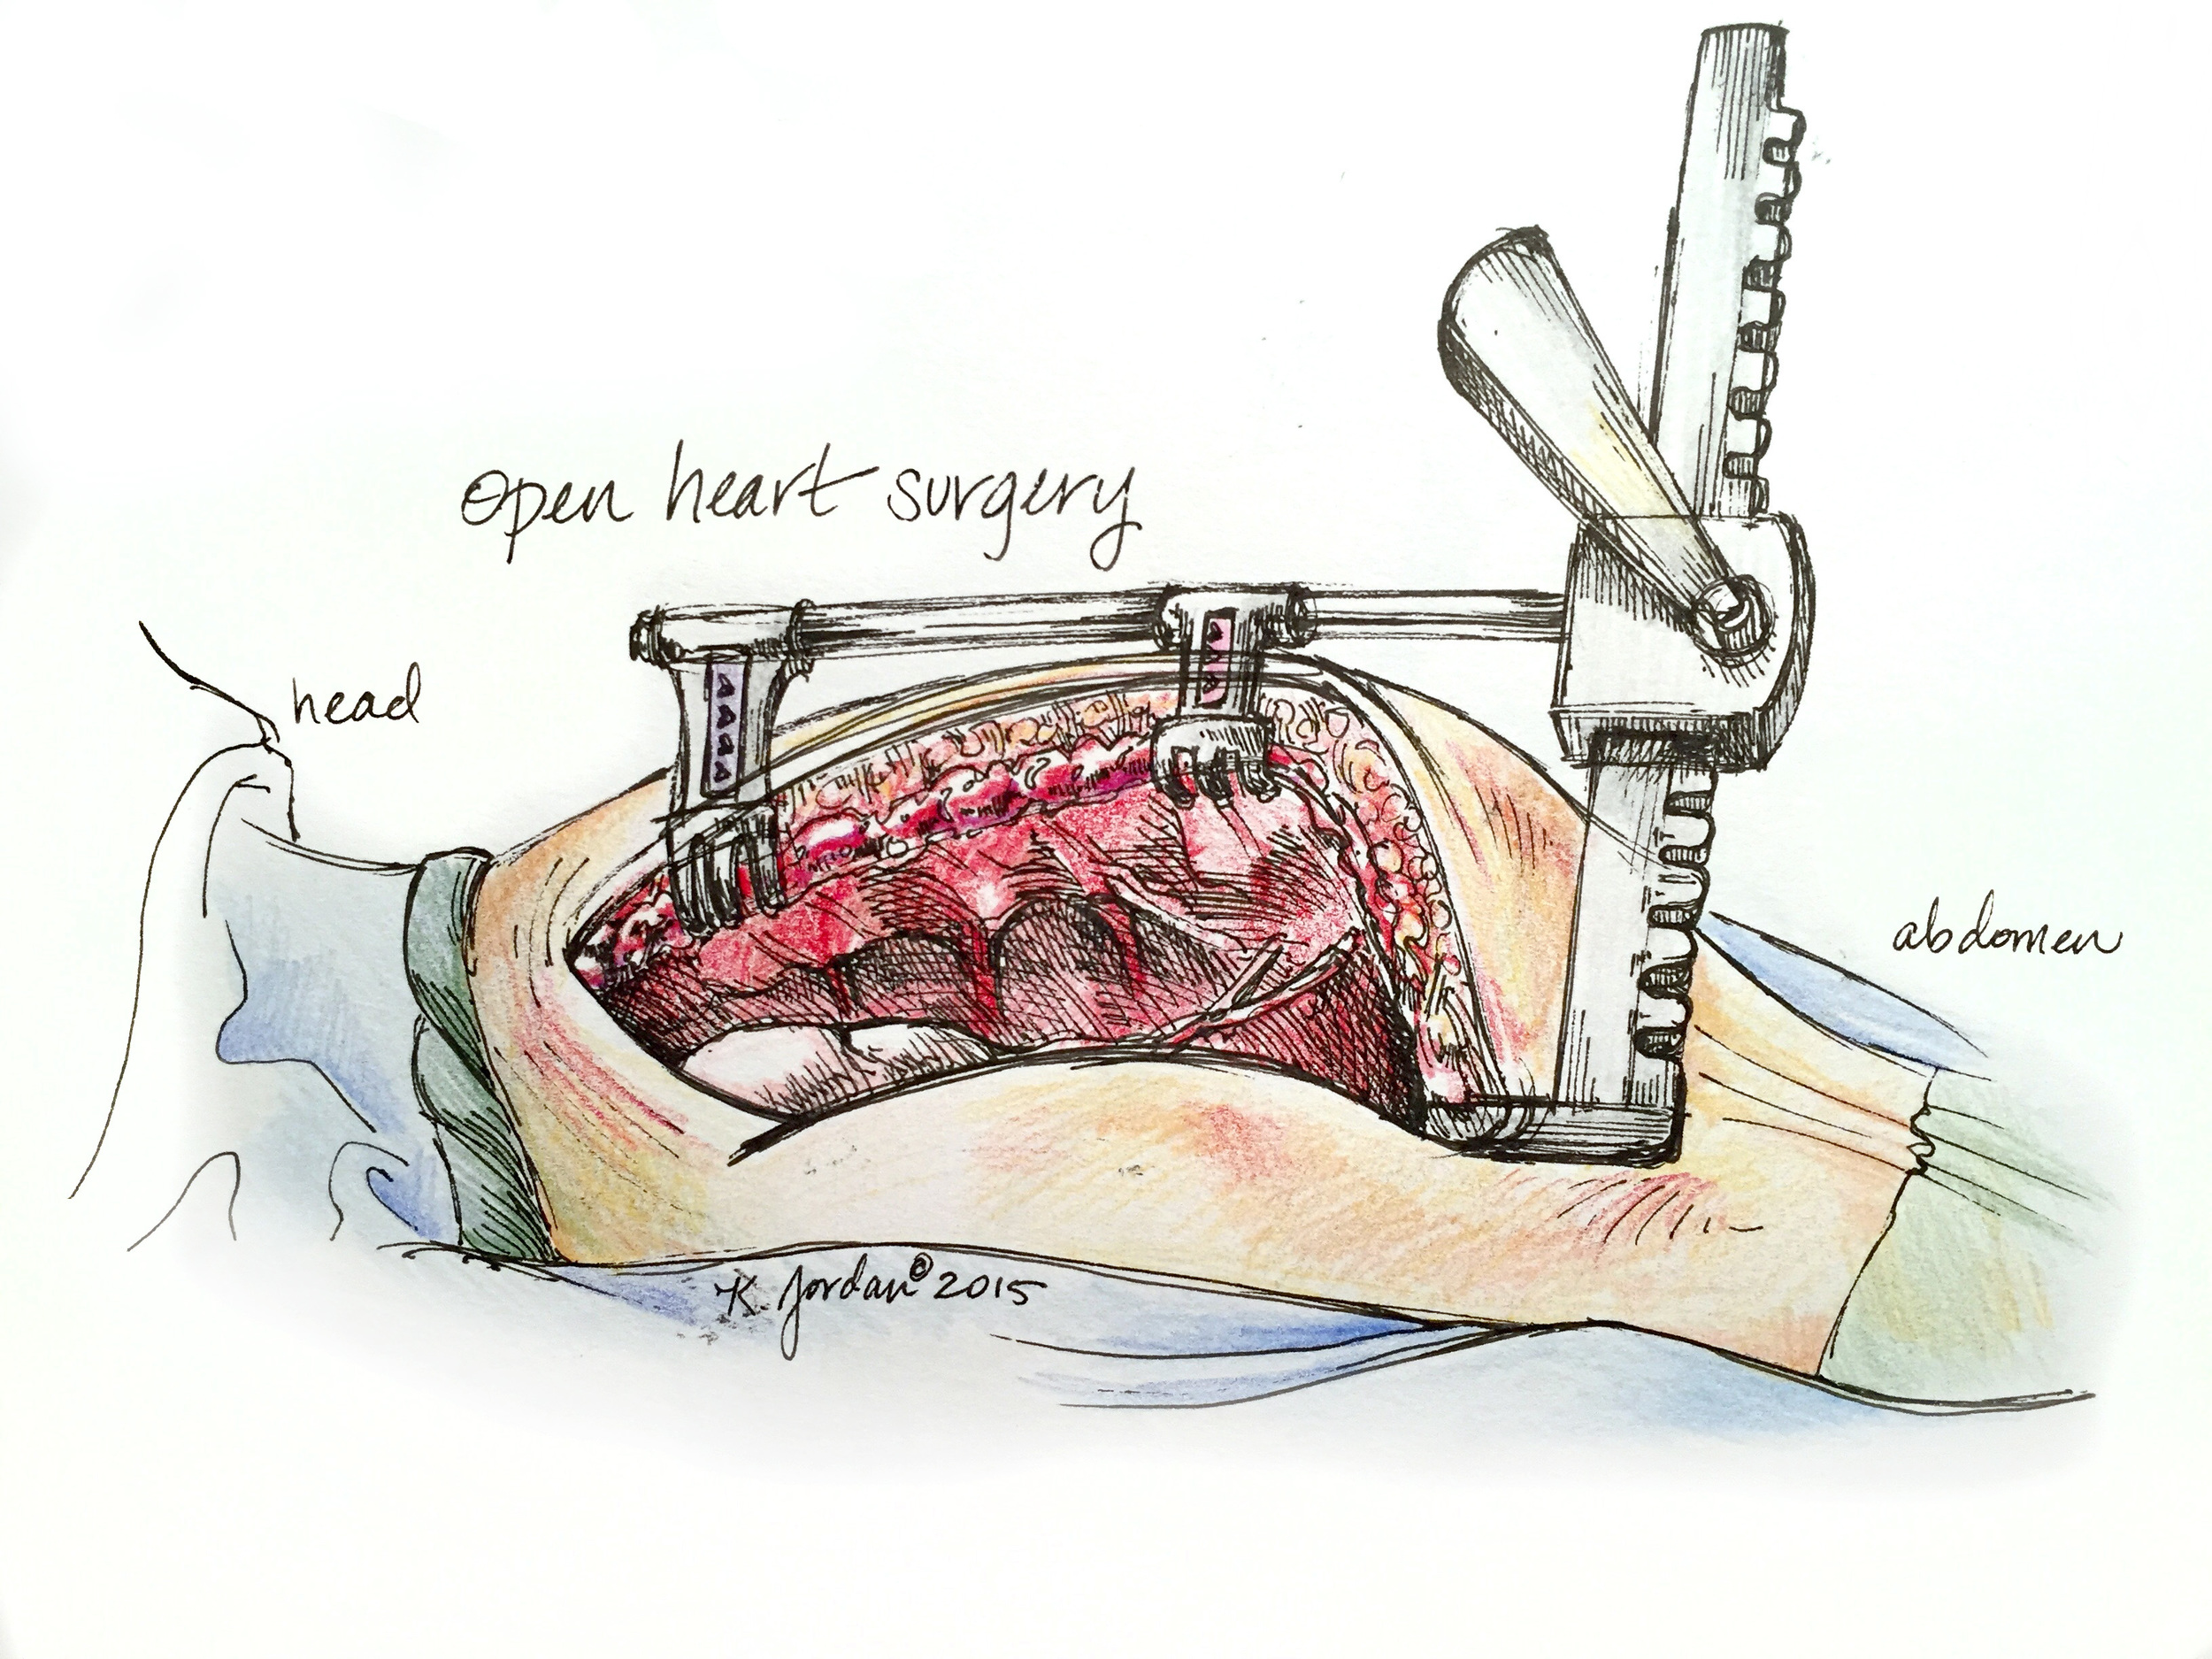 Surgical Sketch: Open Heart